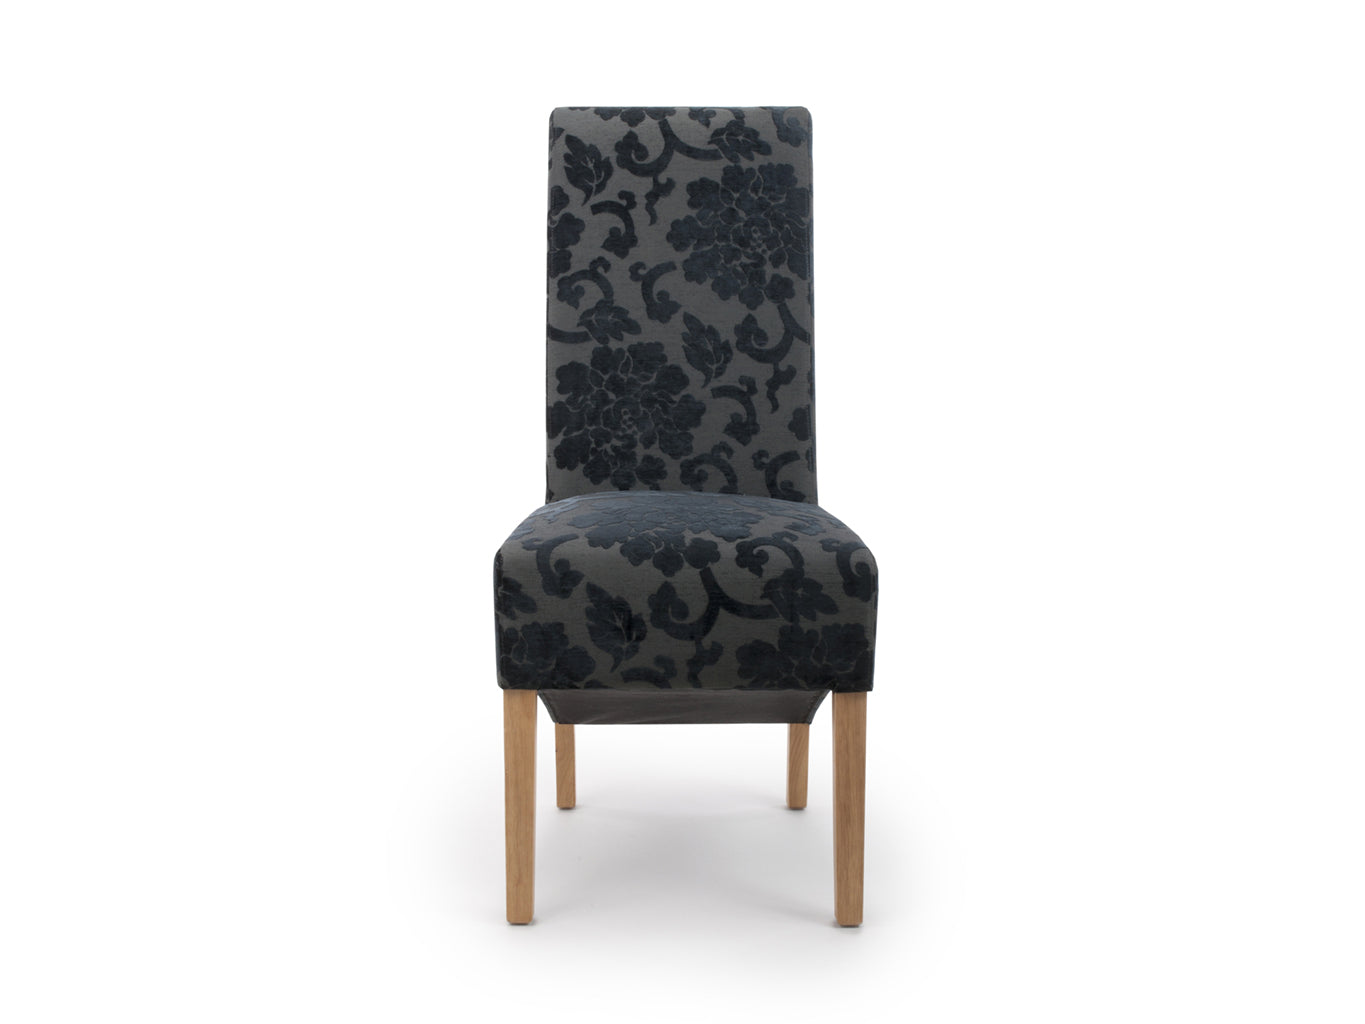 Dining Chairs in black floral velvet upholstery